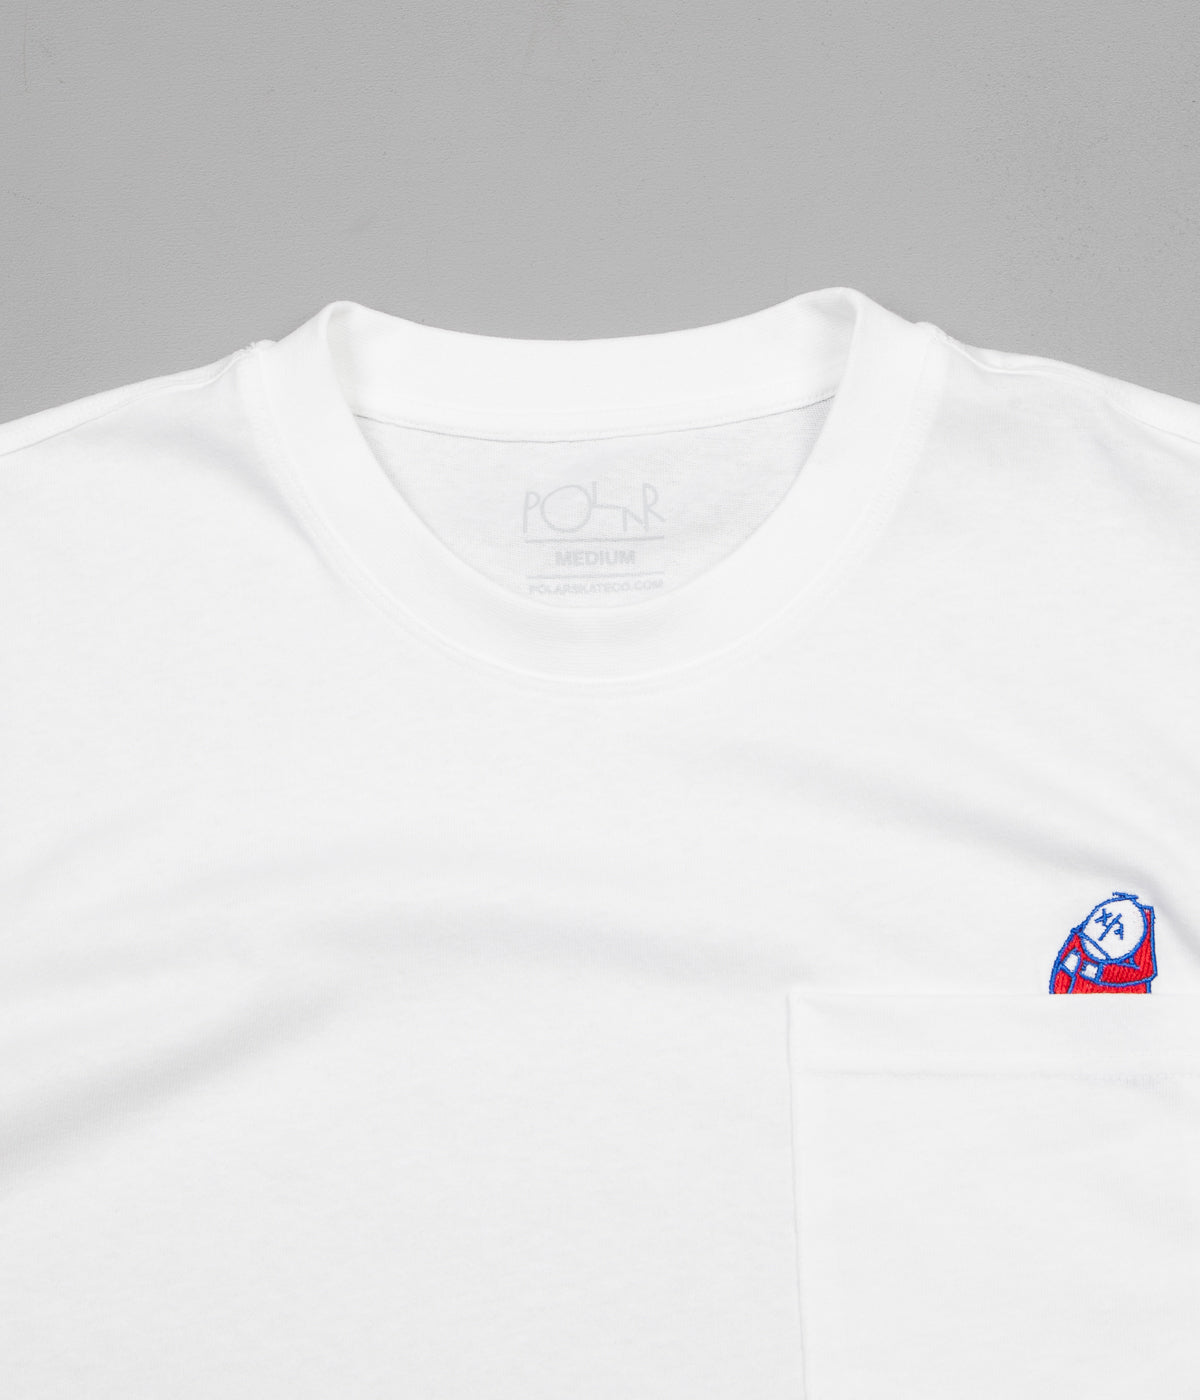 272c106897 ... Polar Big Boy Pocket T-Shirt - White ...